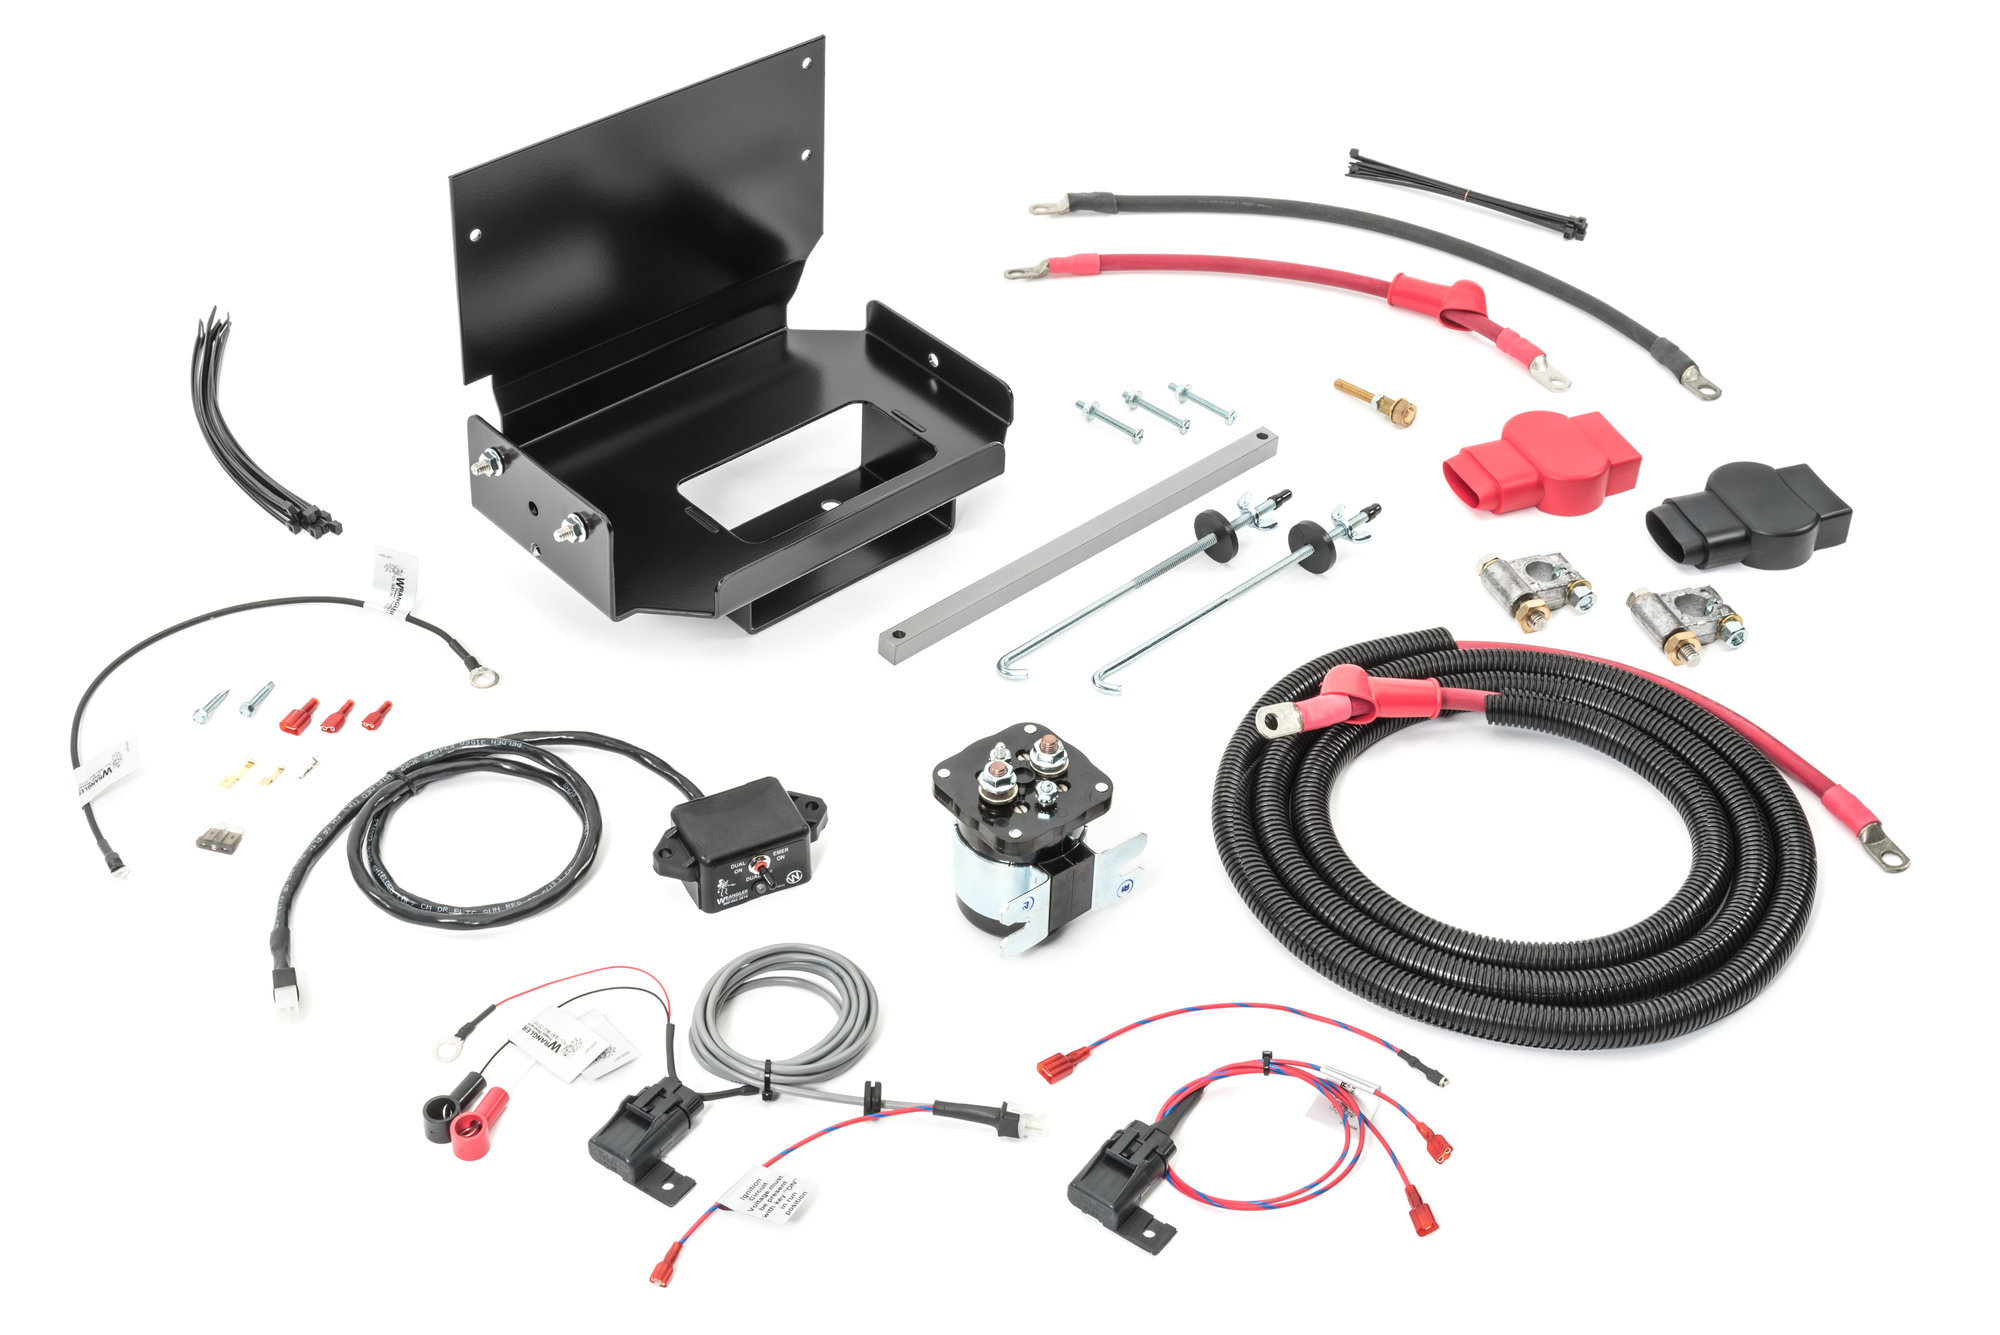 hight resolution of wrangler power products 3100130000 dual battery tray kit for 87 01 jeep auxiliary battery wiring